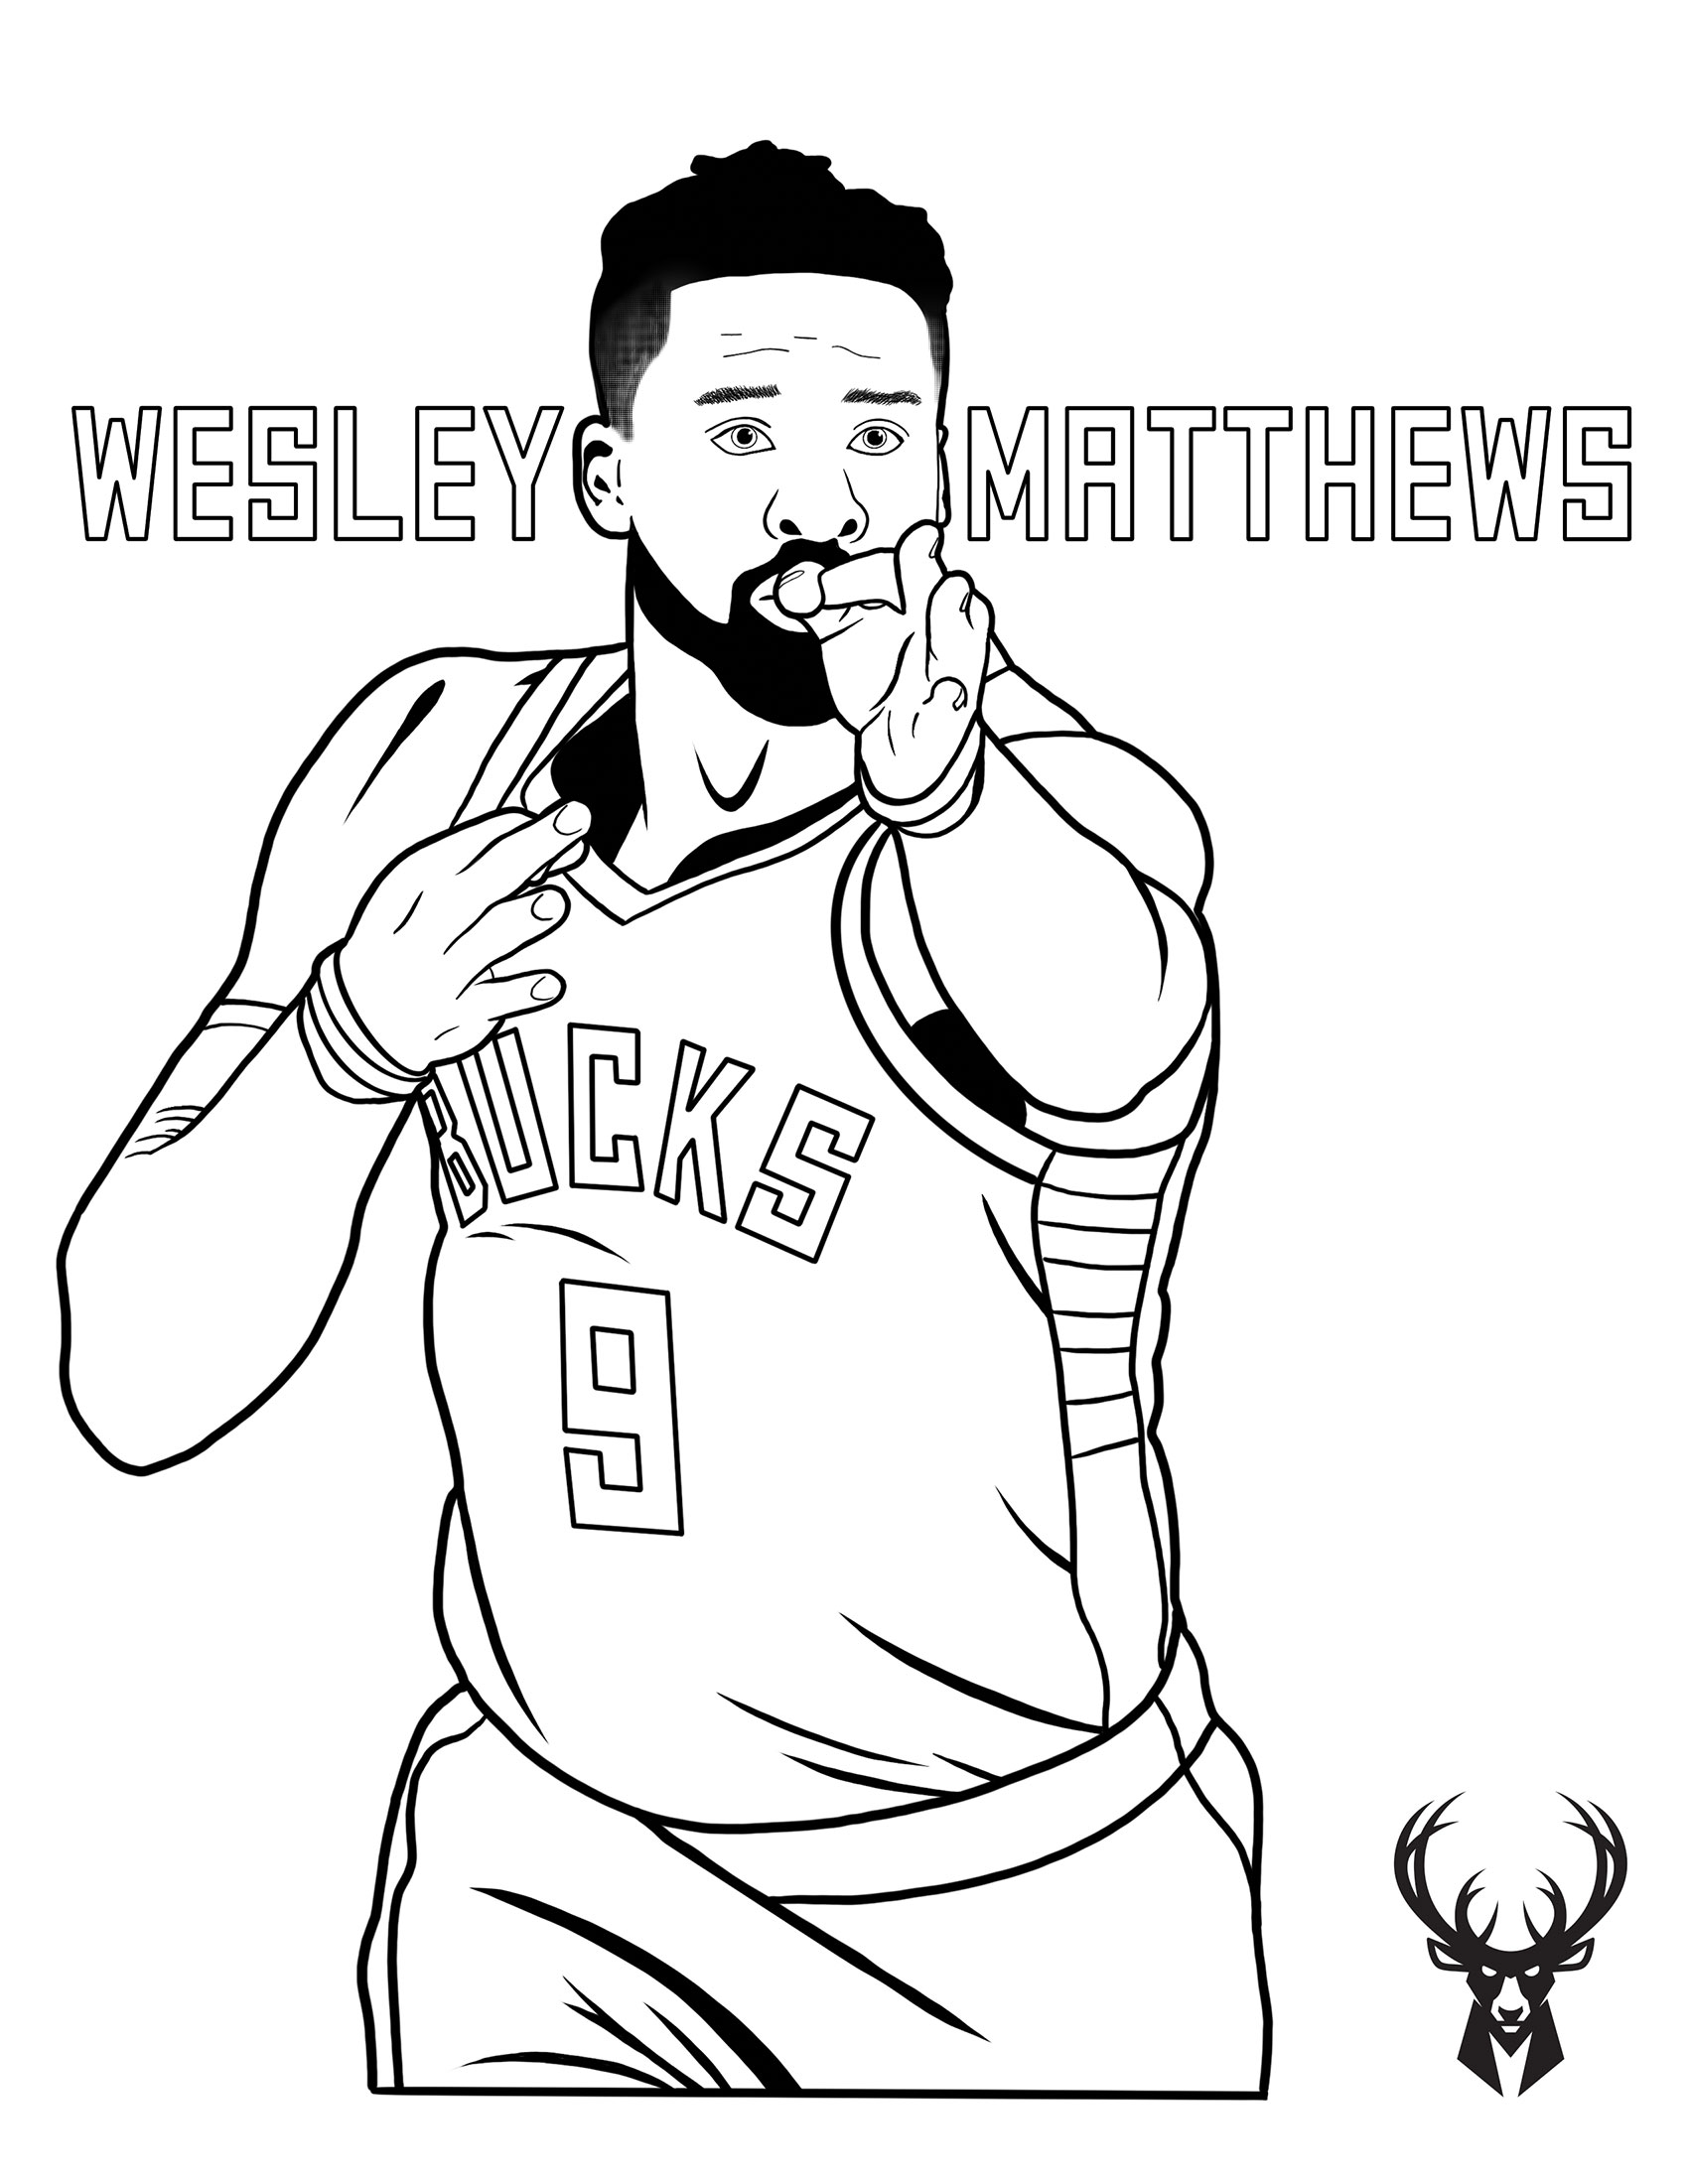 Bucks Kids Pages Color Wesley Matthews